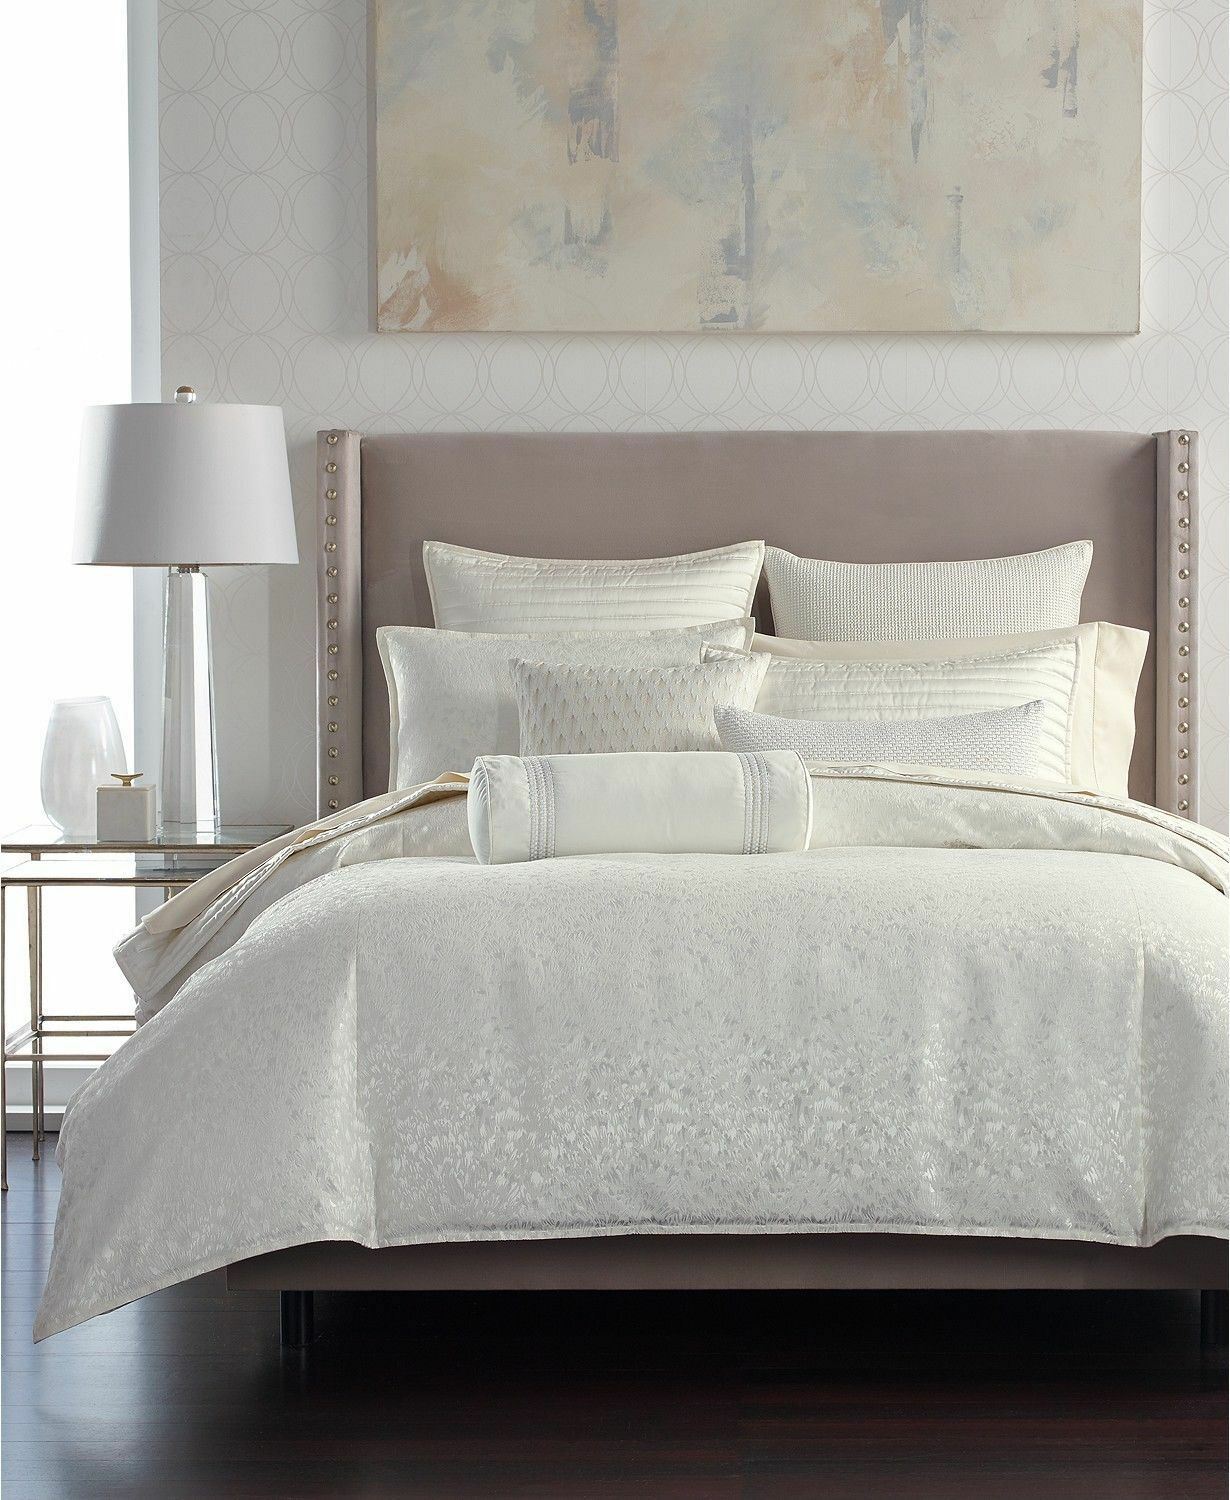 New Hotel Collection Plume Off White Full Queen Comforter